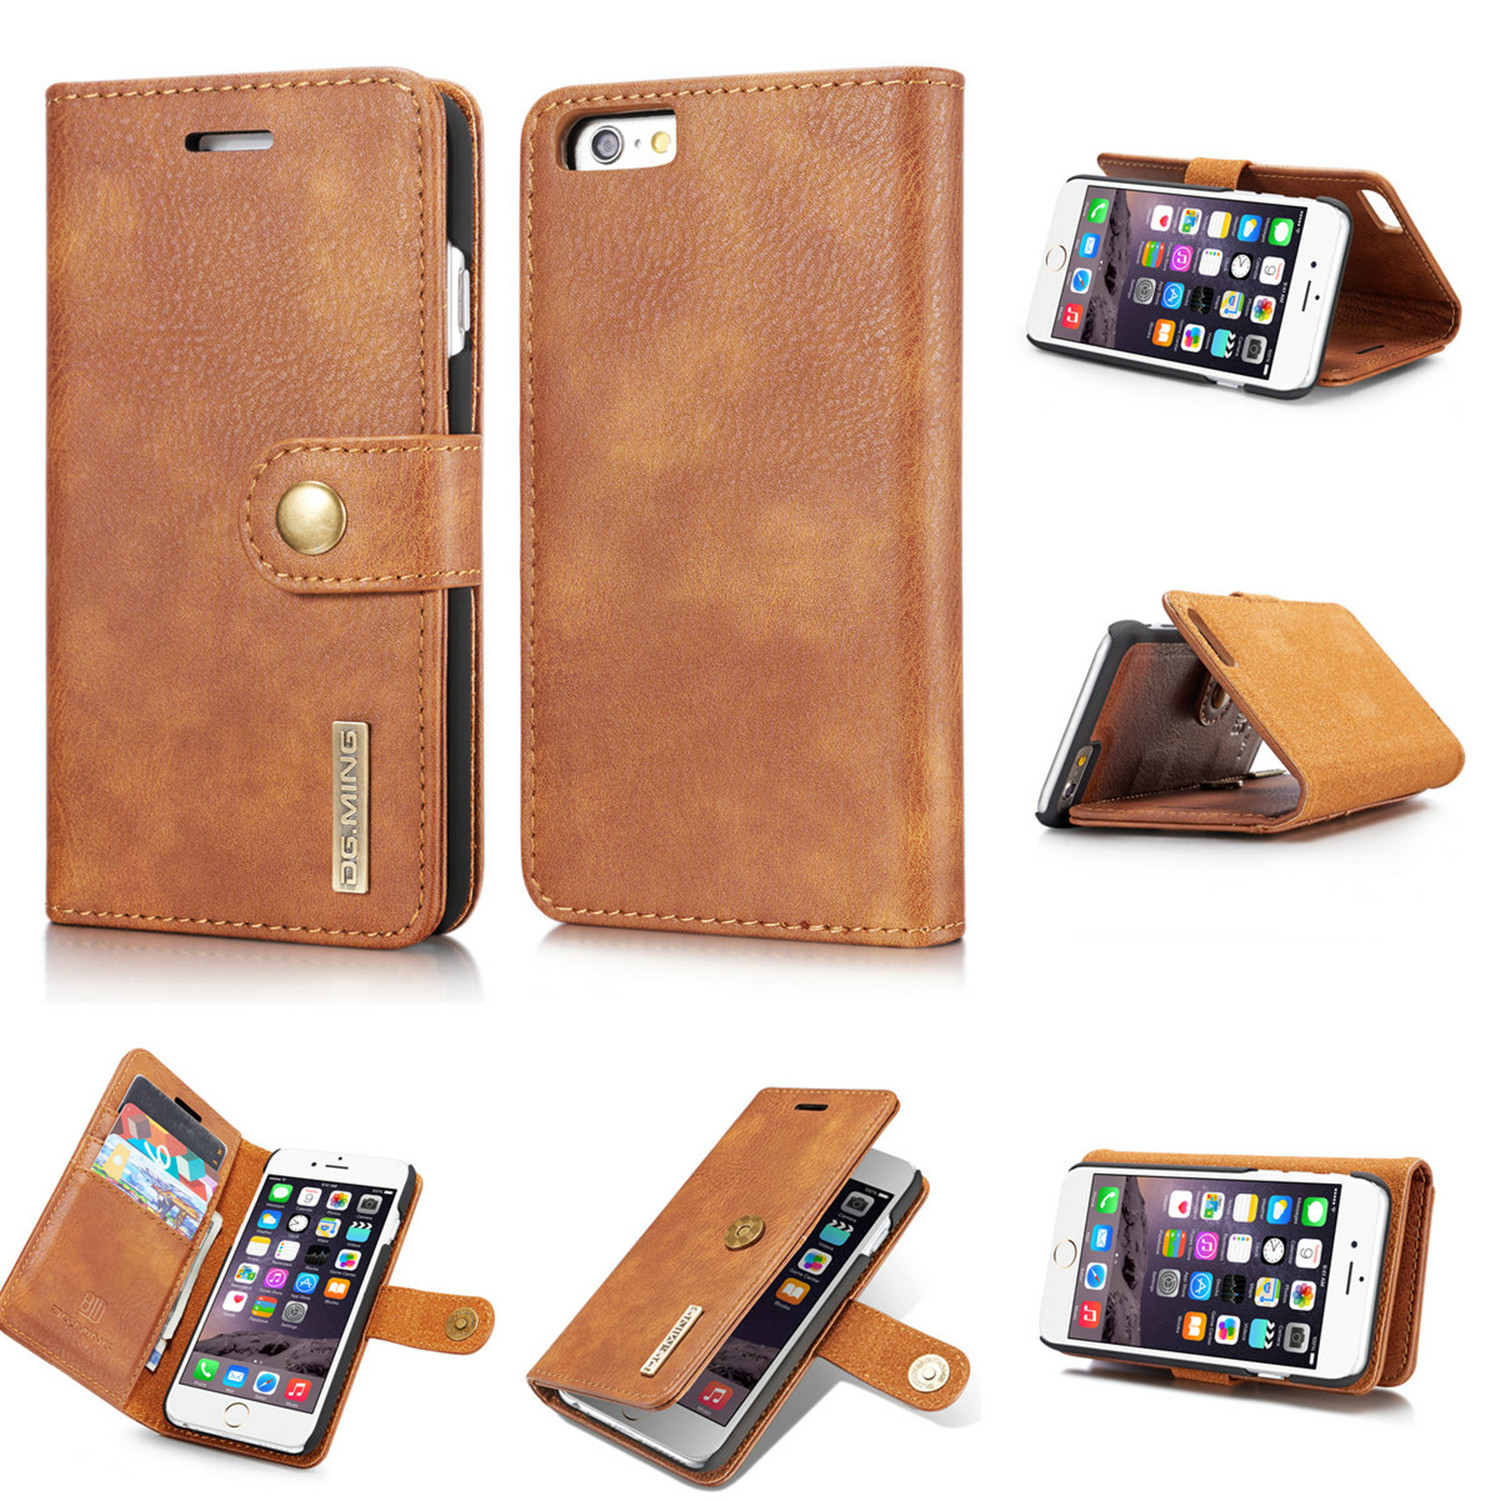 Premium Real Leather Card Holder Wallet Flip Case Phone Cover for Various Phones